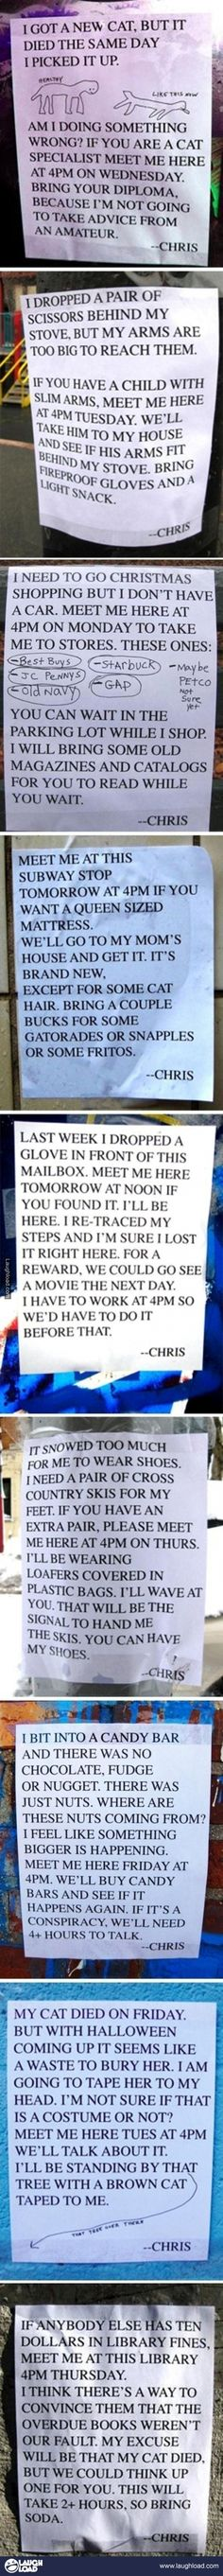 I want to meet Chris.